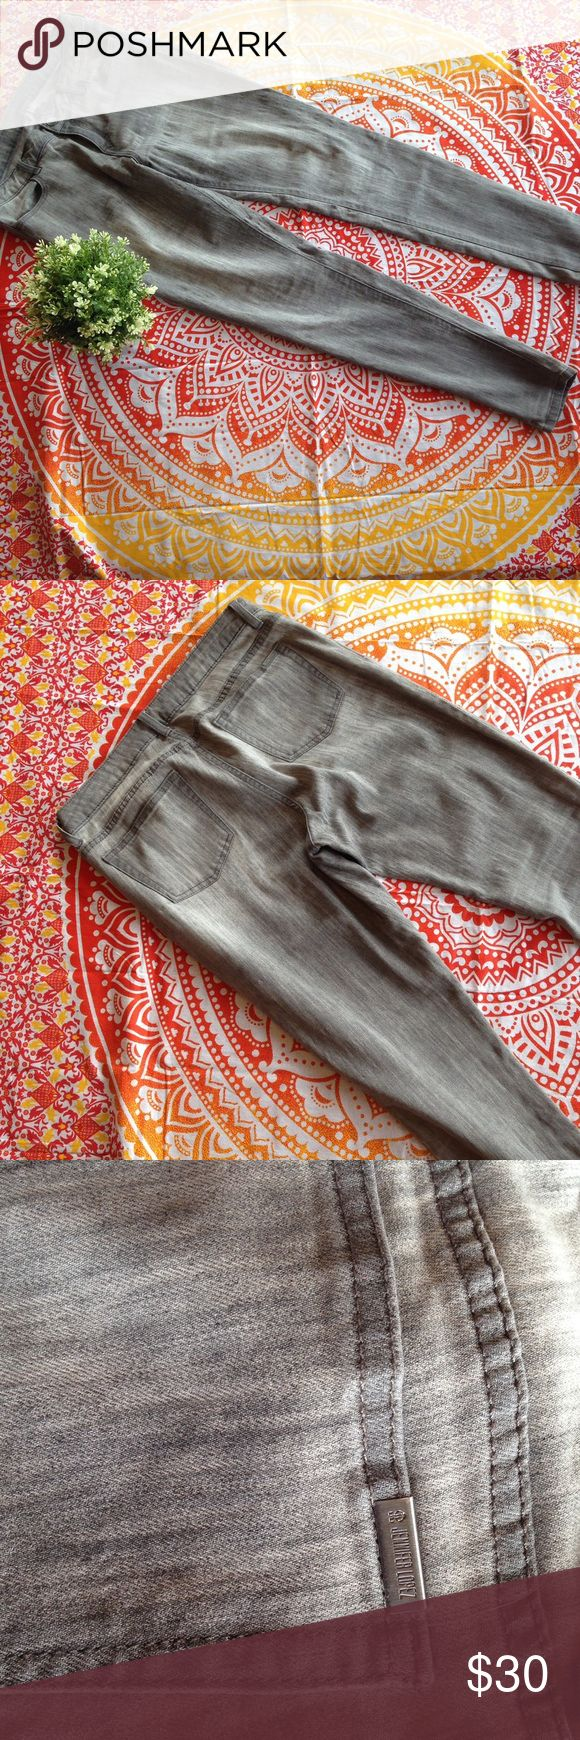 Gray Jenifer Lopez skinny jeans Wow! These gray Jennifer Lopez skinny jeans are amazing! They are super soft and flattering. They haven't been worn many times and are in great shape with no holes or rips. They do not have a lot of stretch to them. Jennifer Lopez Jeans Skinny